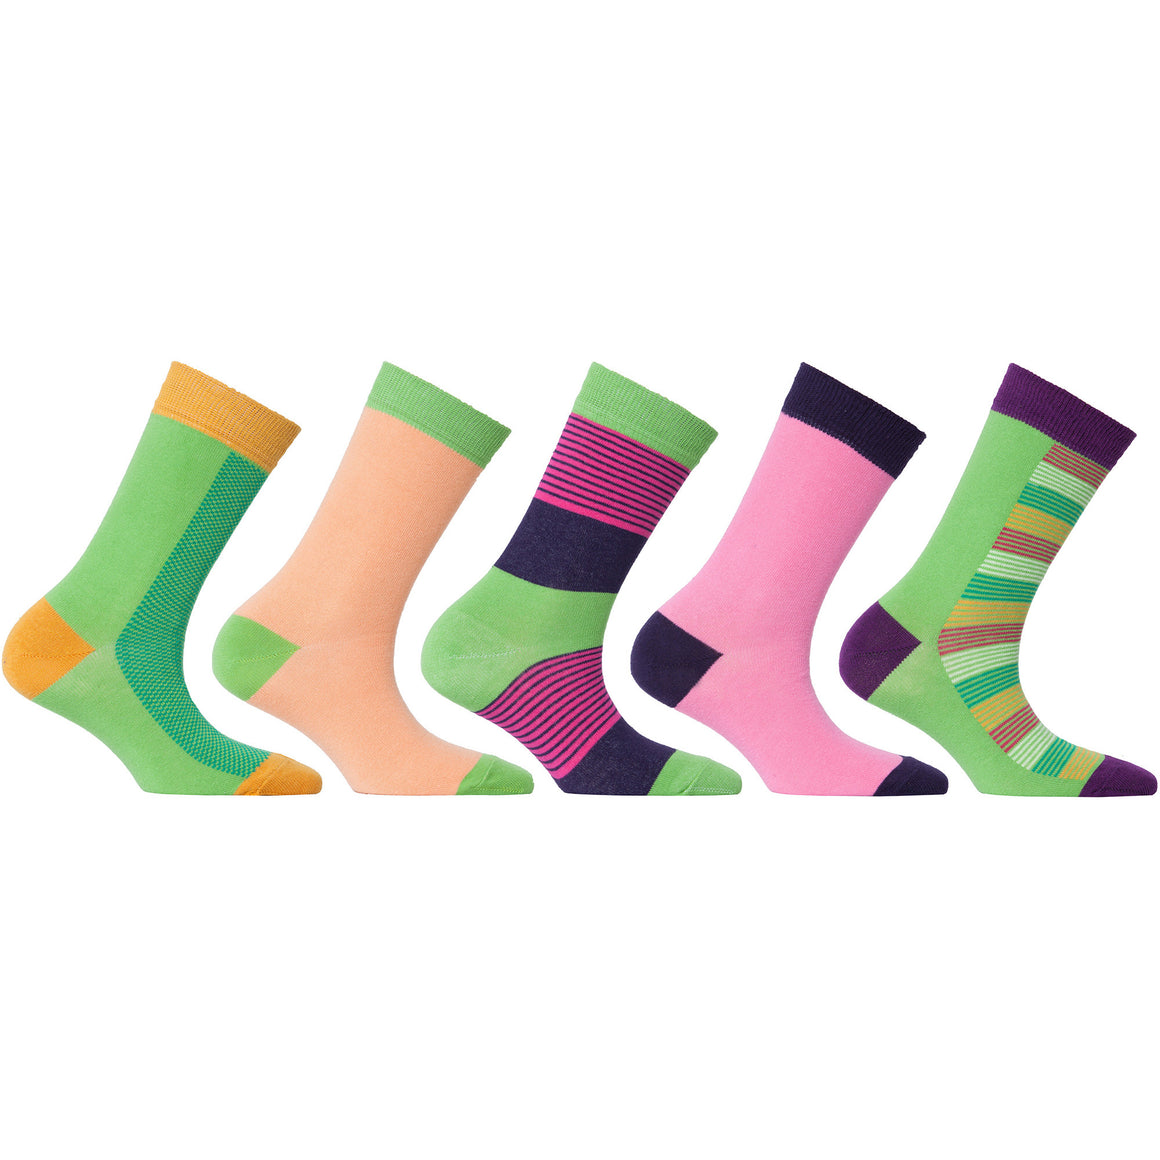 Womens 5-Pair Colorful Crew Socks - 6039